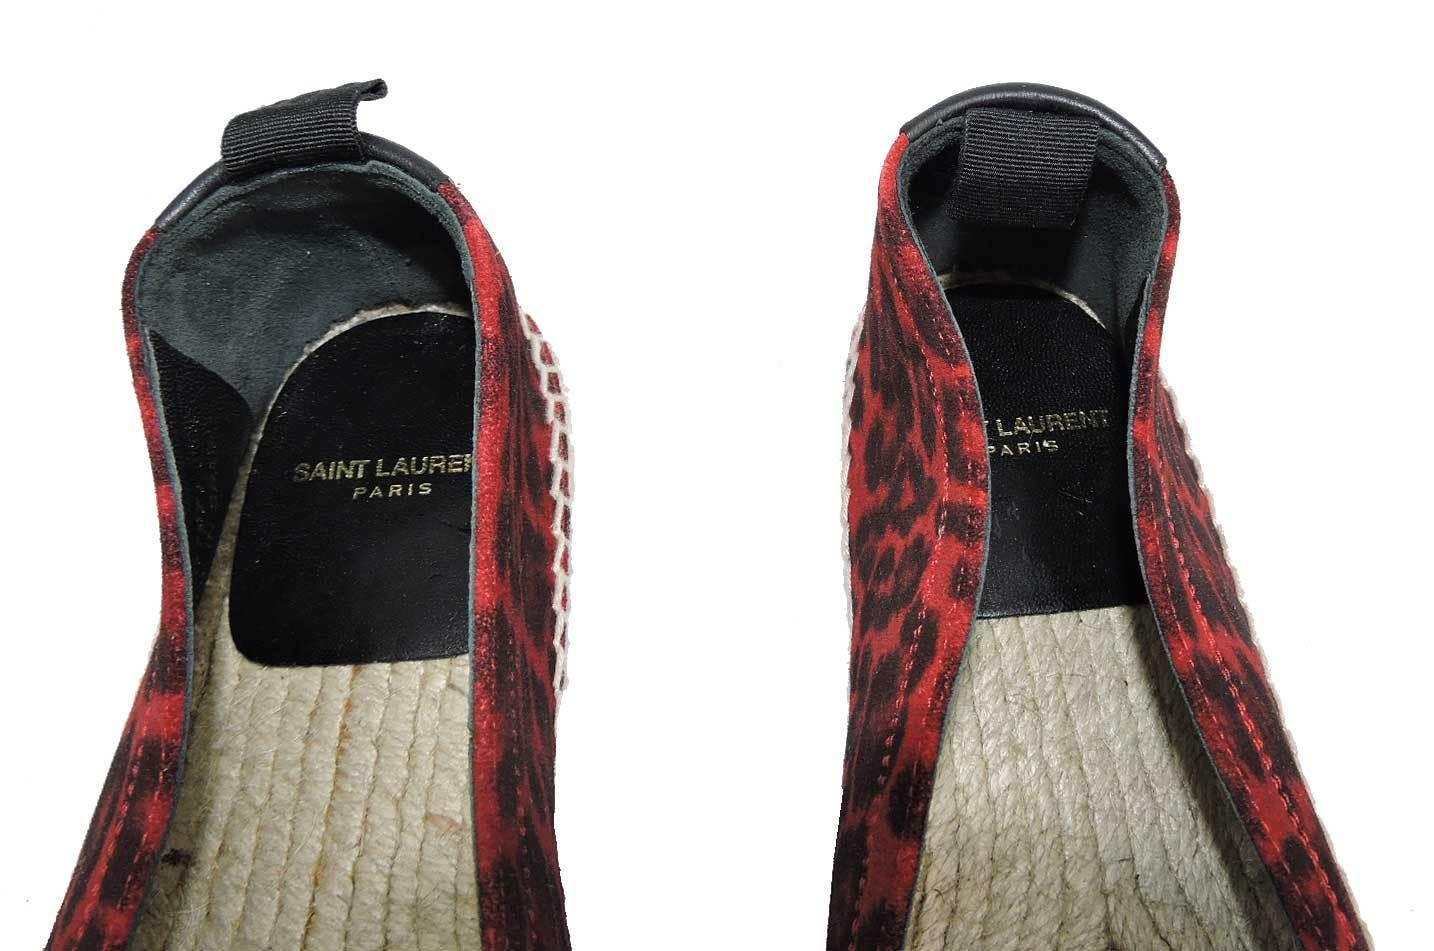 SAINT LAURENT Red Leopard Printed Suede Espadrilles Shoe Ballet Loafer 36.5 - Click Image to Close